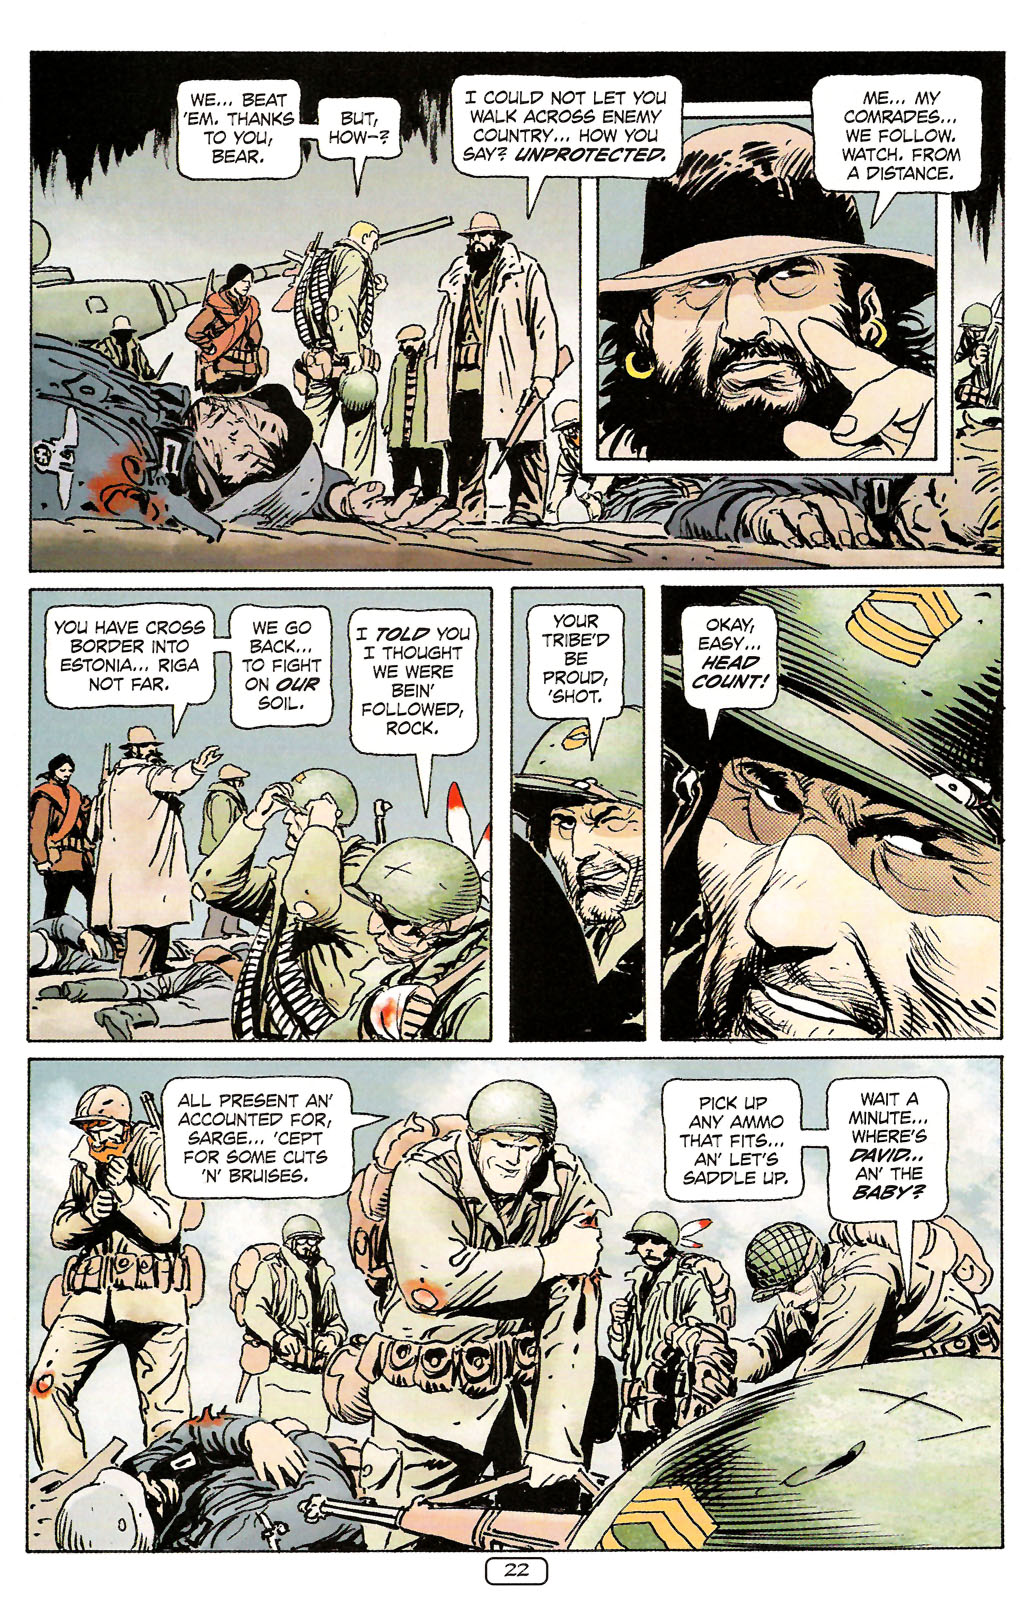 Read online Sgt. Rock: The Prophecy comic -  Issue #4 - 22